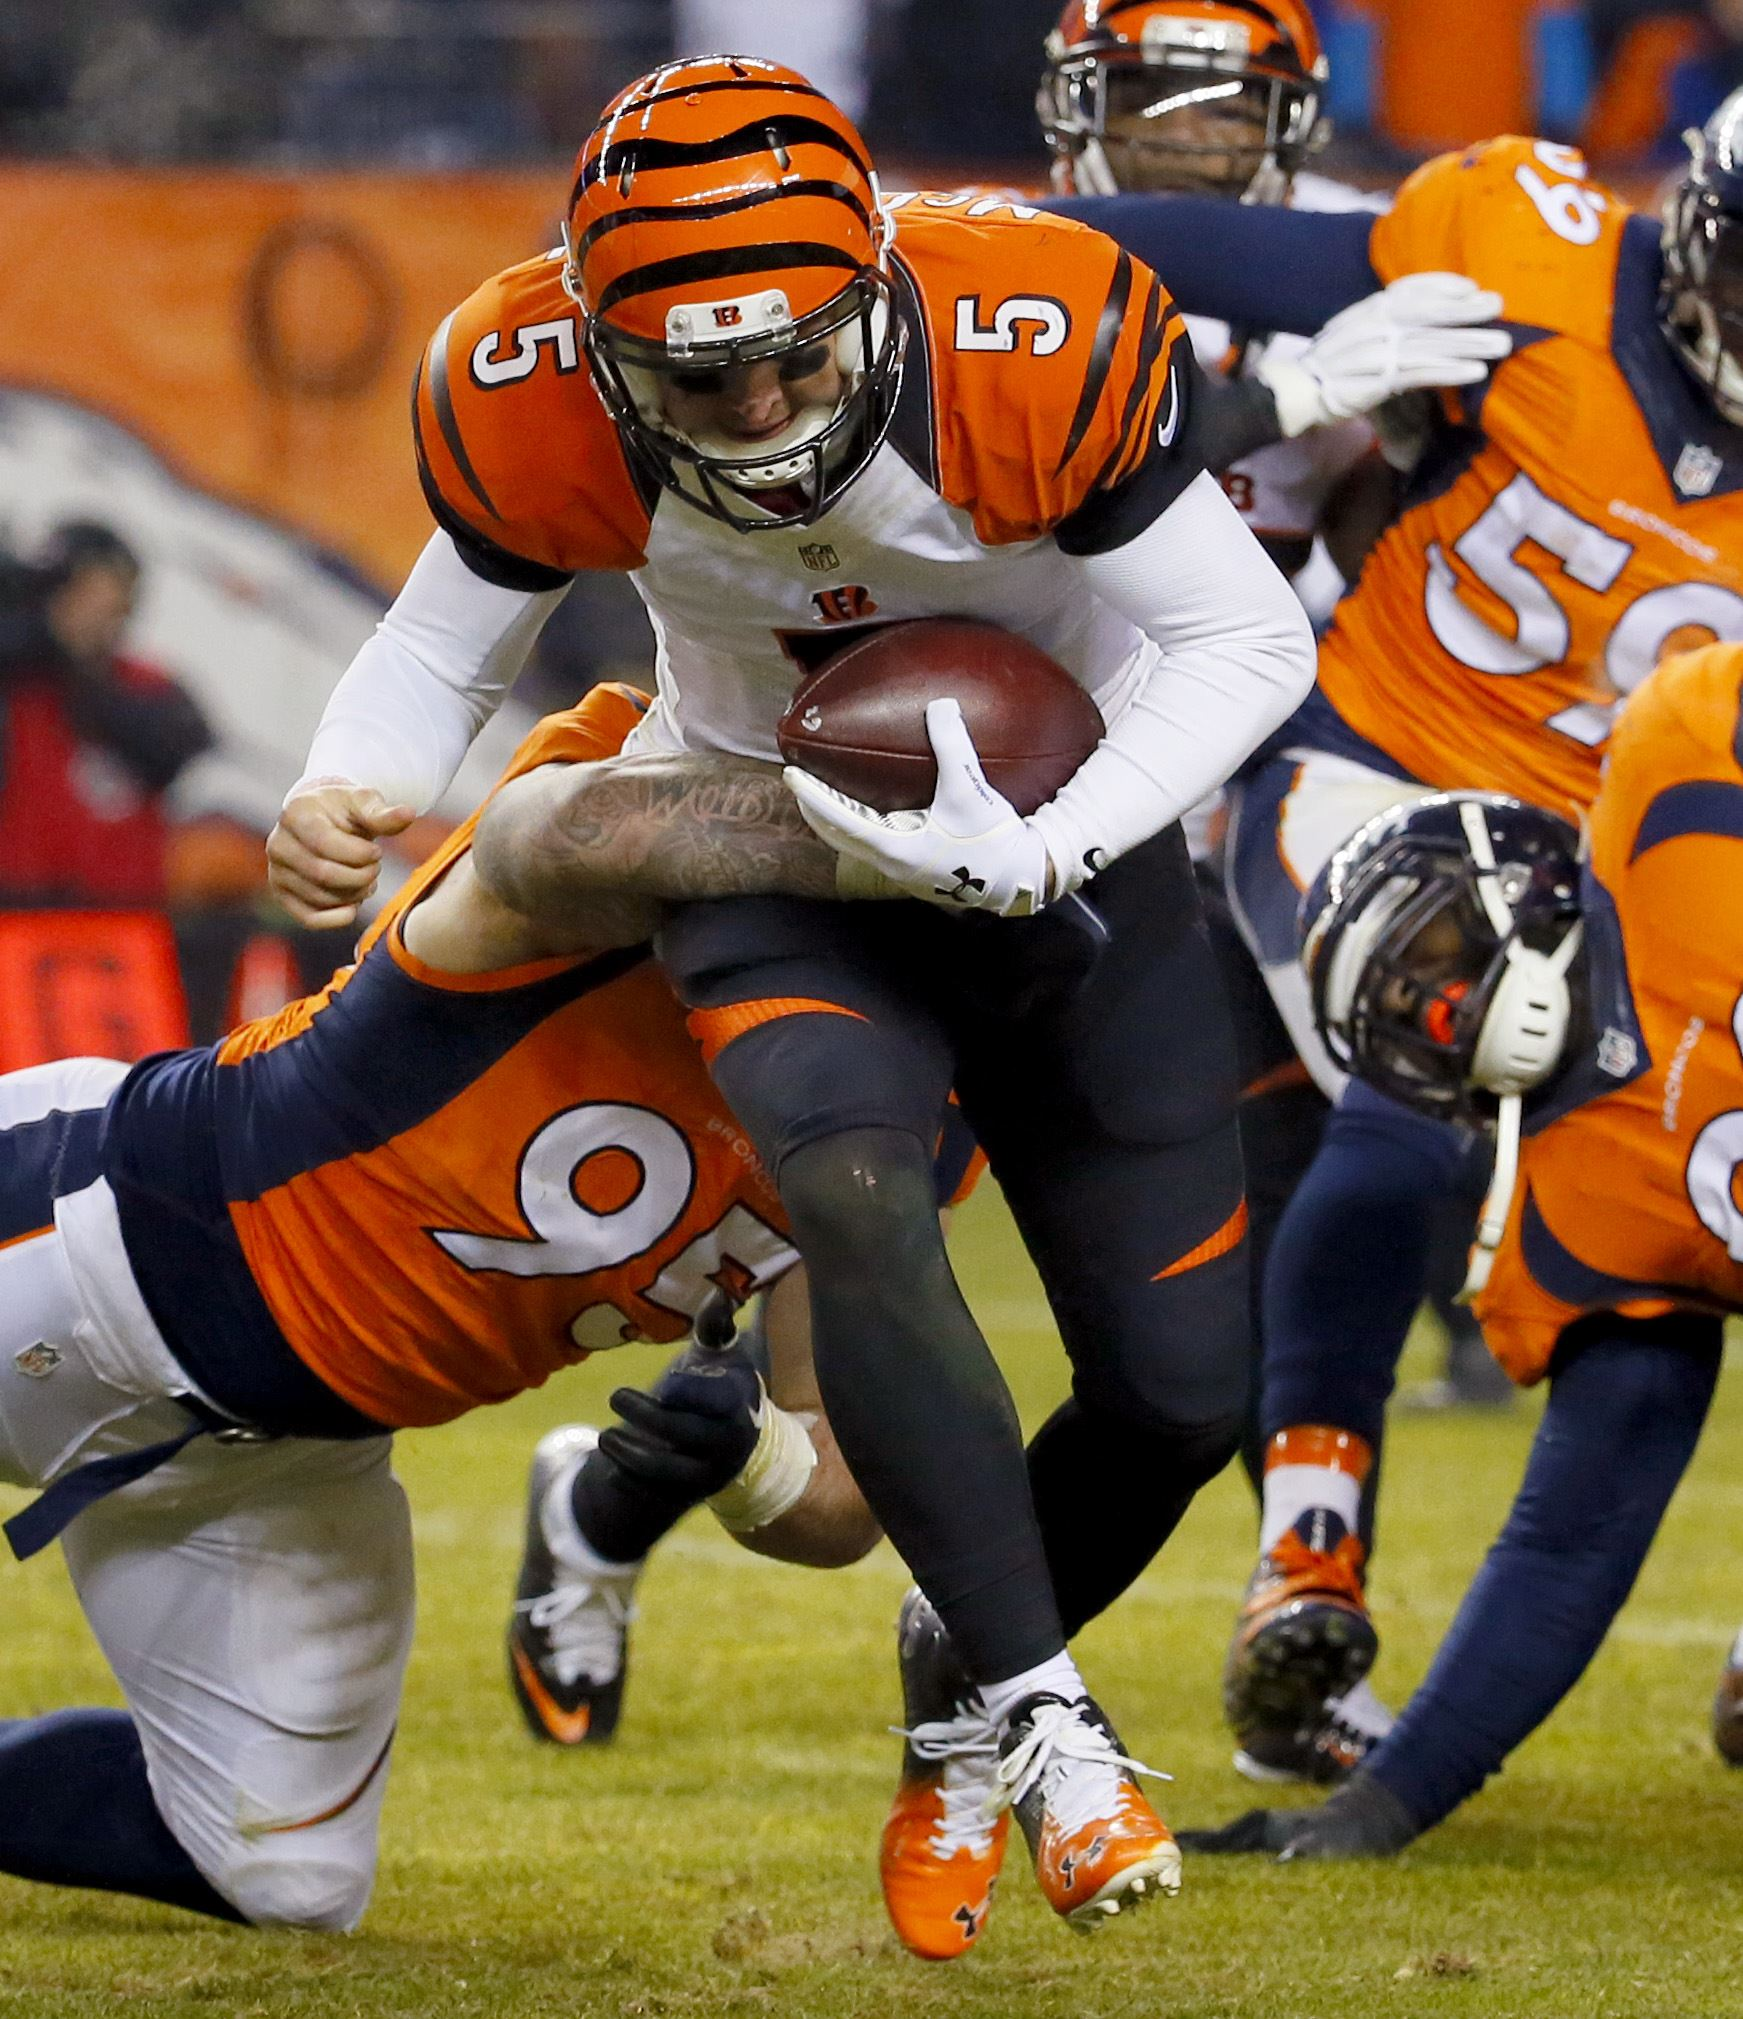 bengals broncos odds who winning the football game today